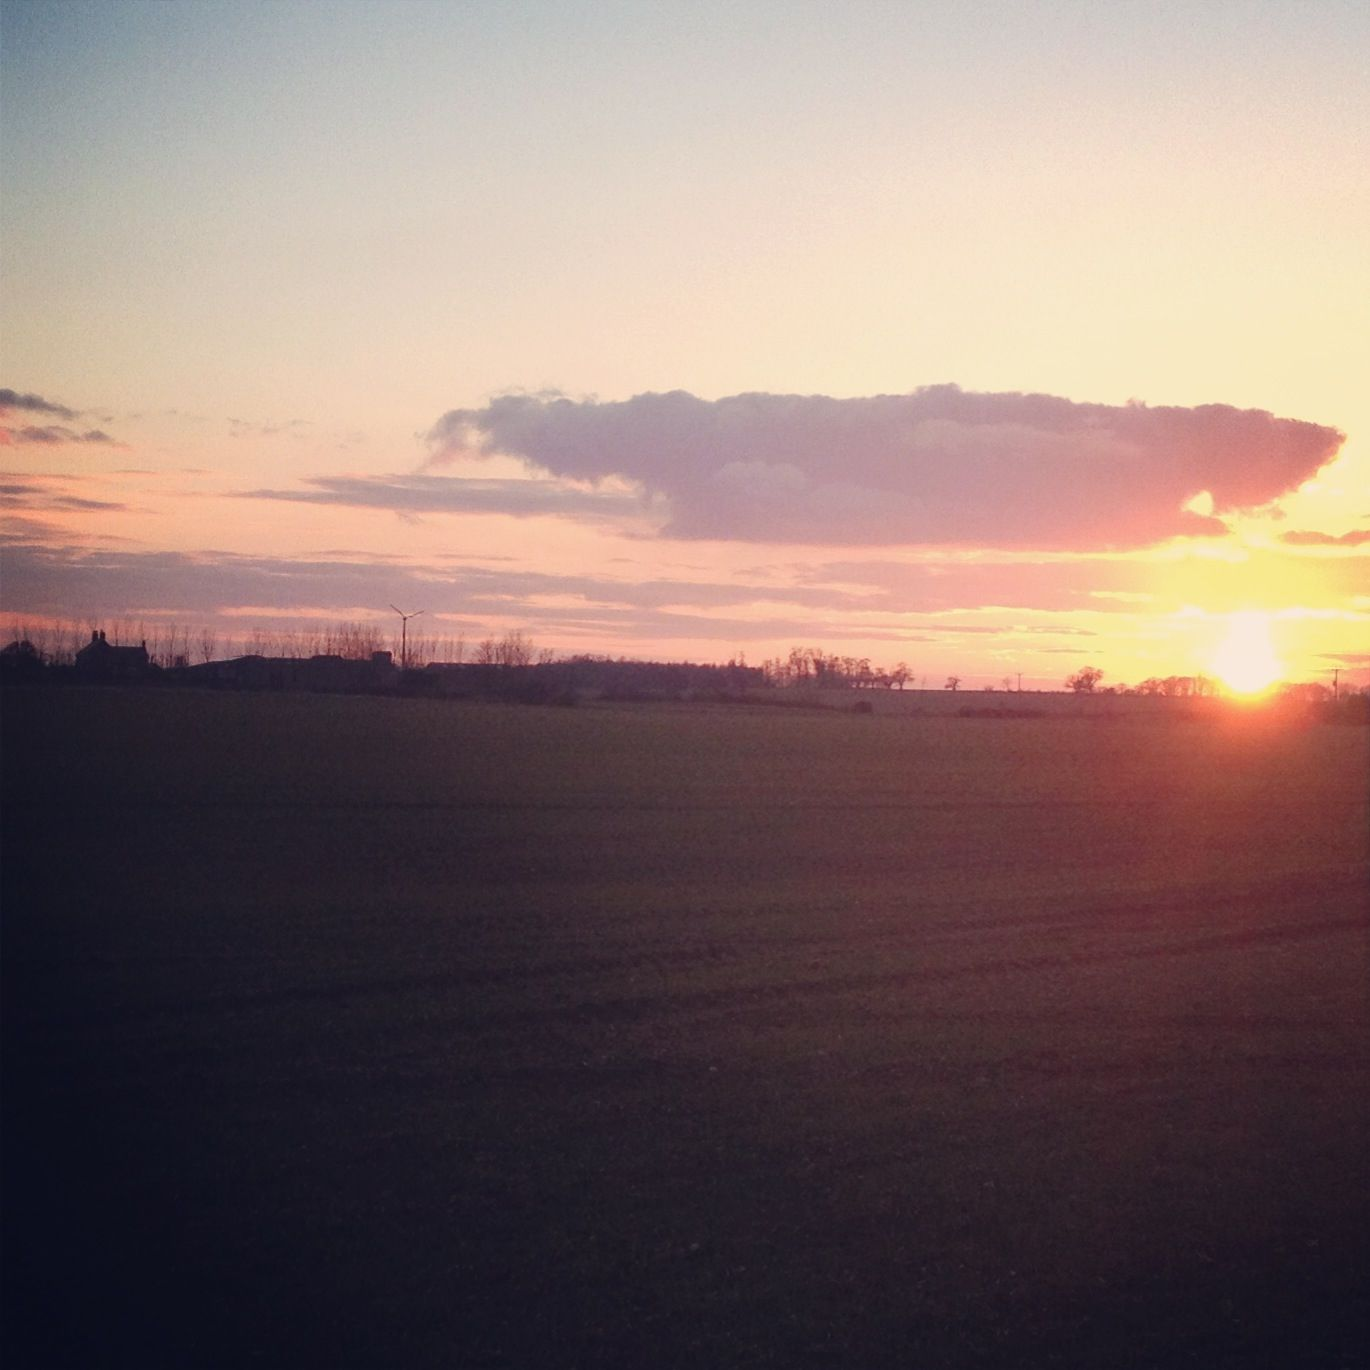 Sunset Saturday back home in East Yorkshire